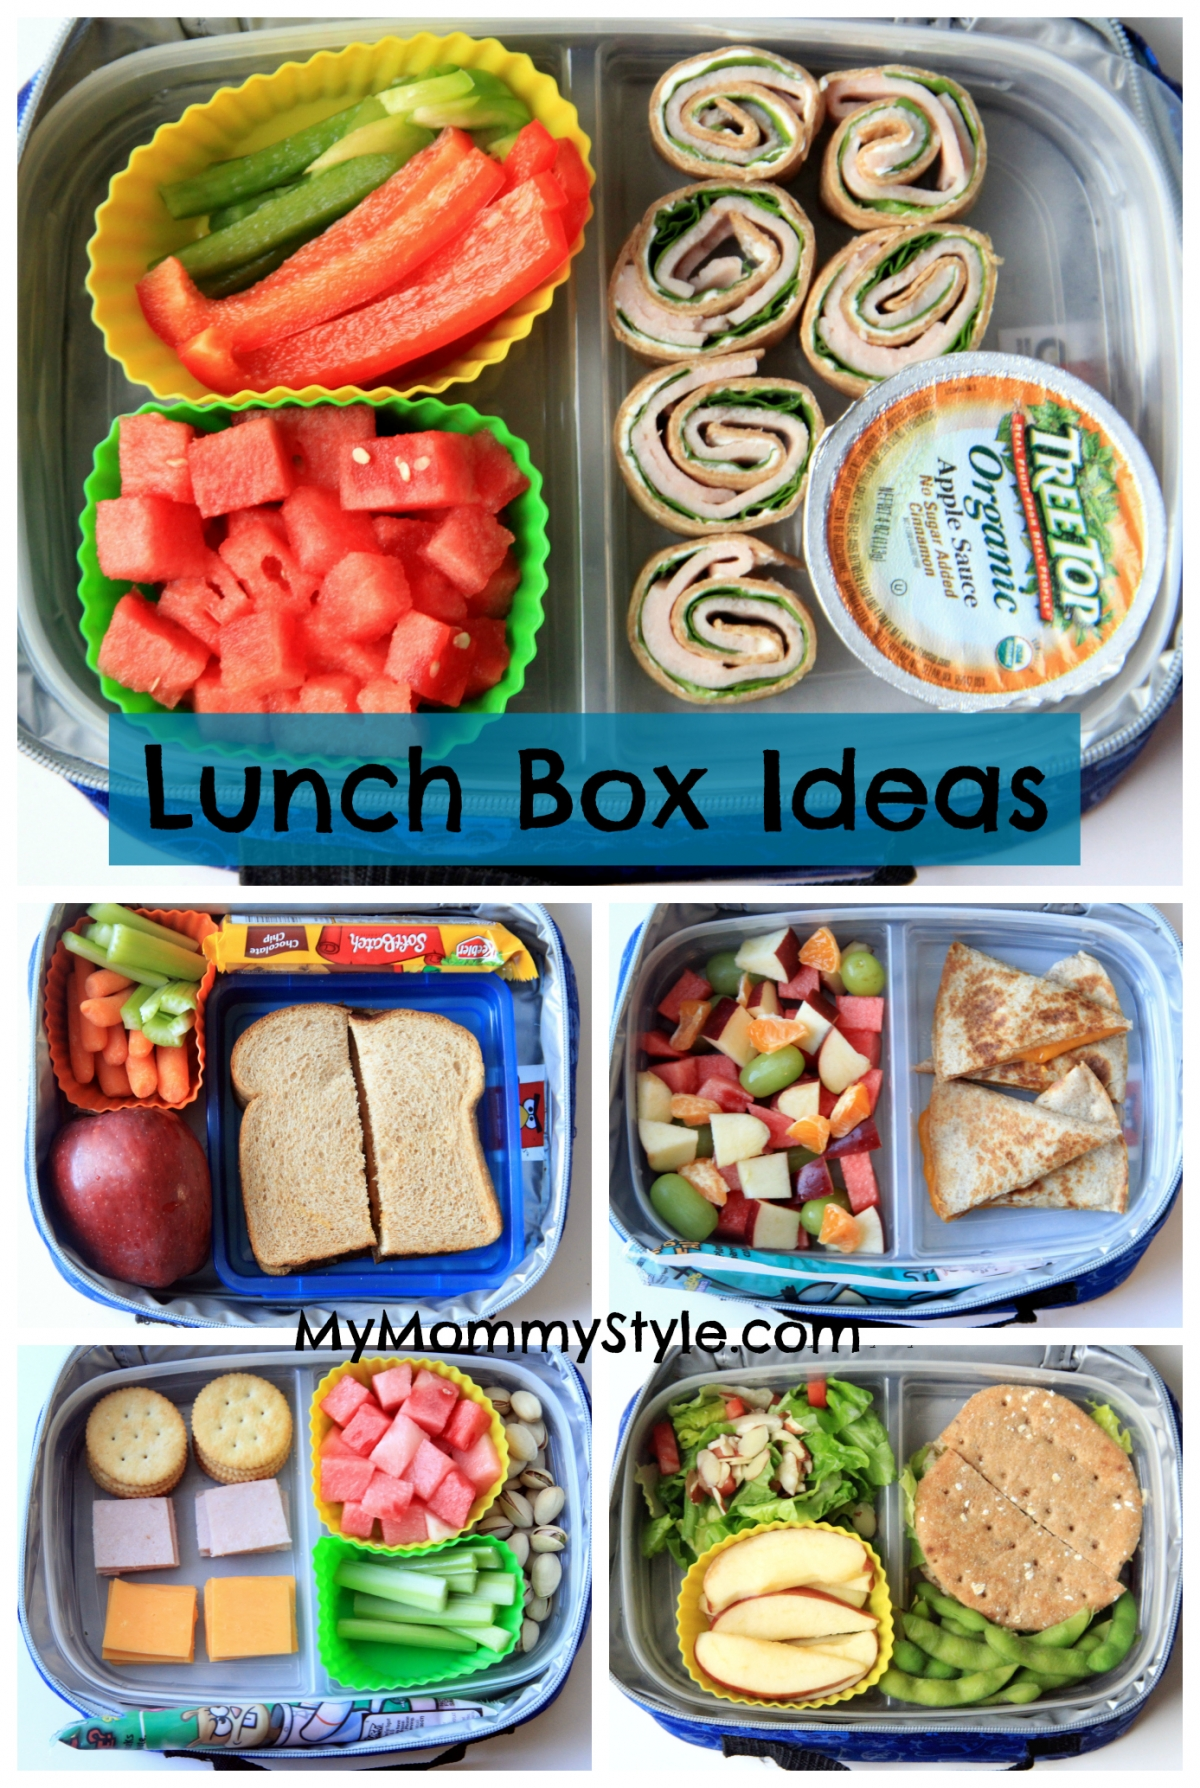 Lunch-box-ideas-kid-lunches-school-lunch-cold-lunch-ideas ...